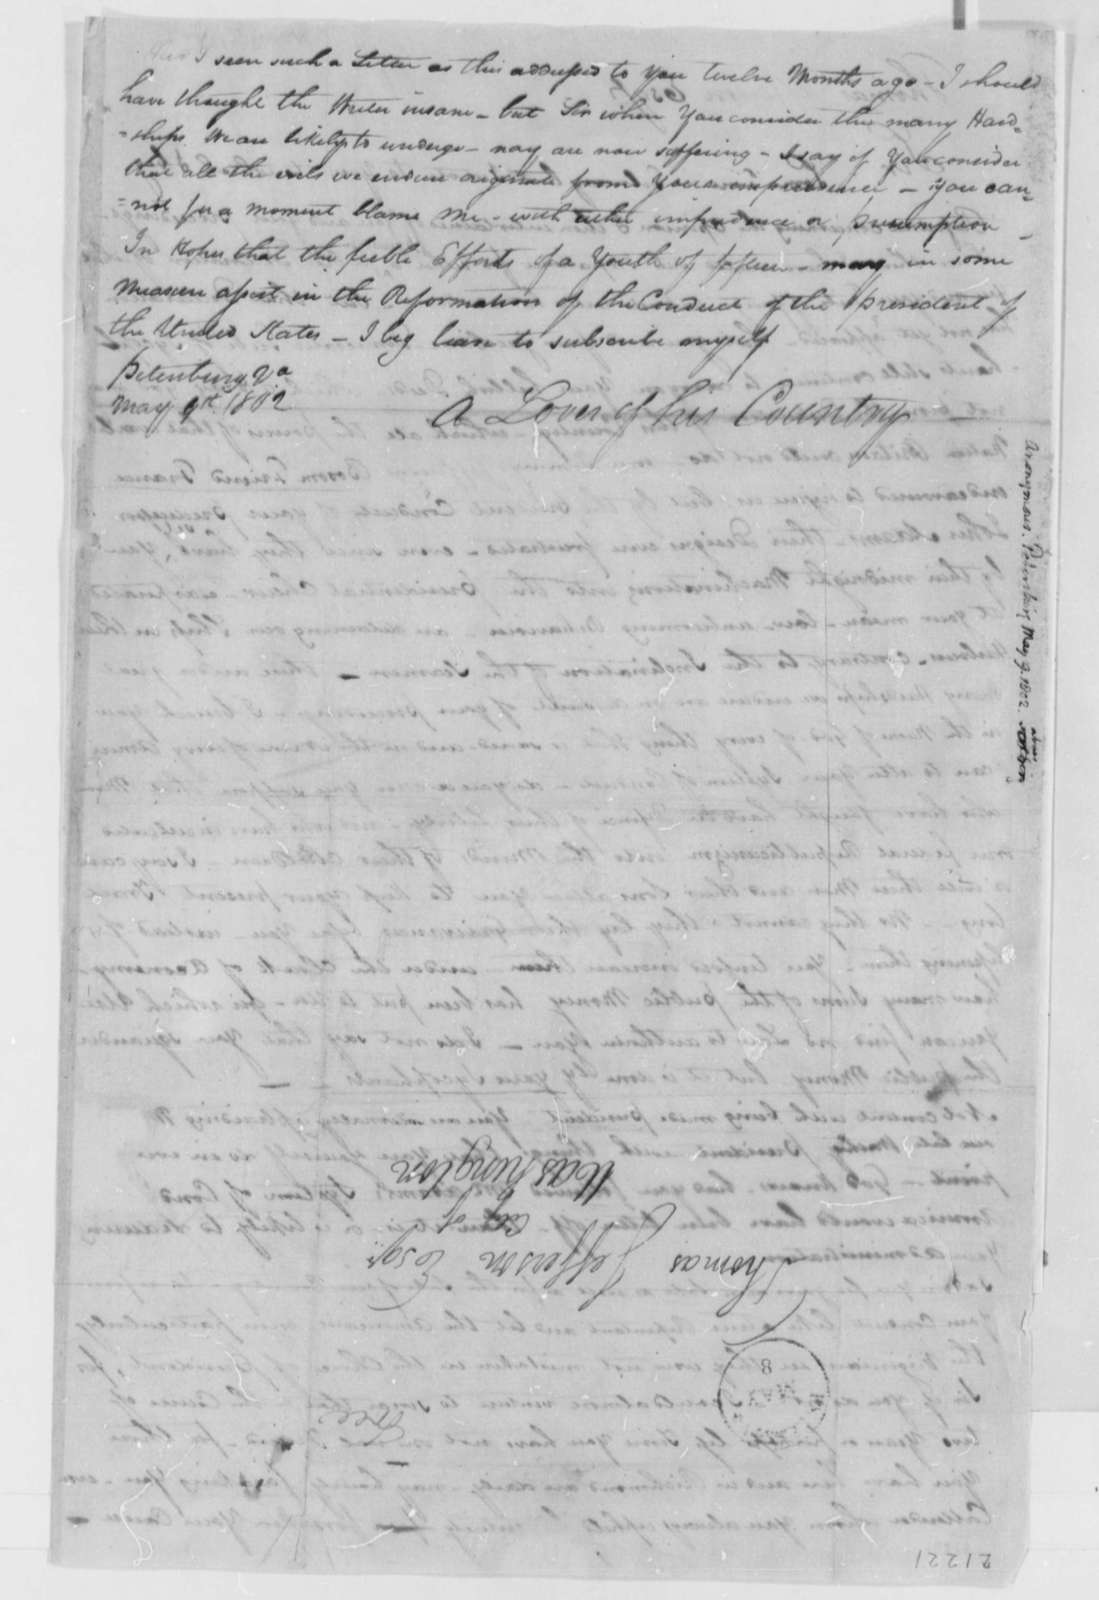 Anonymous, May 9, 1802, Signed, A Lover of His Country